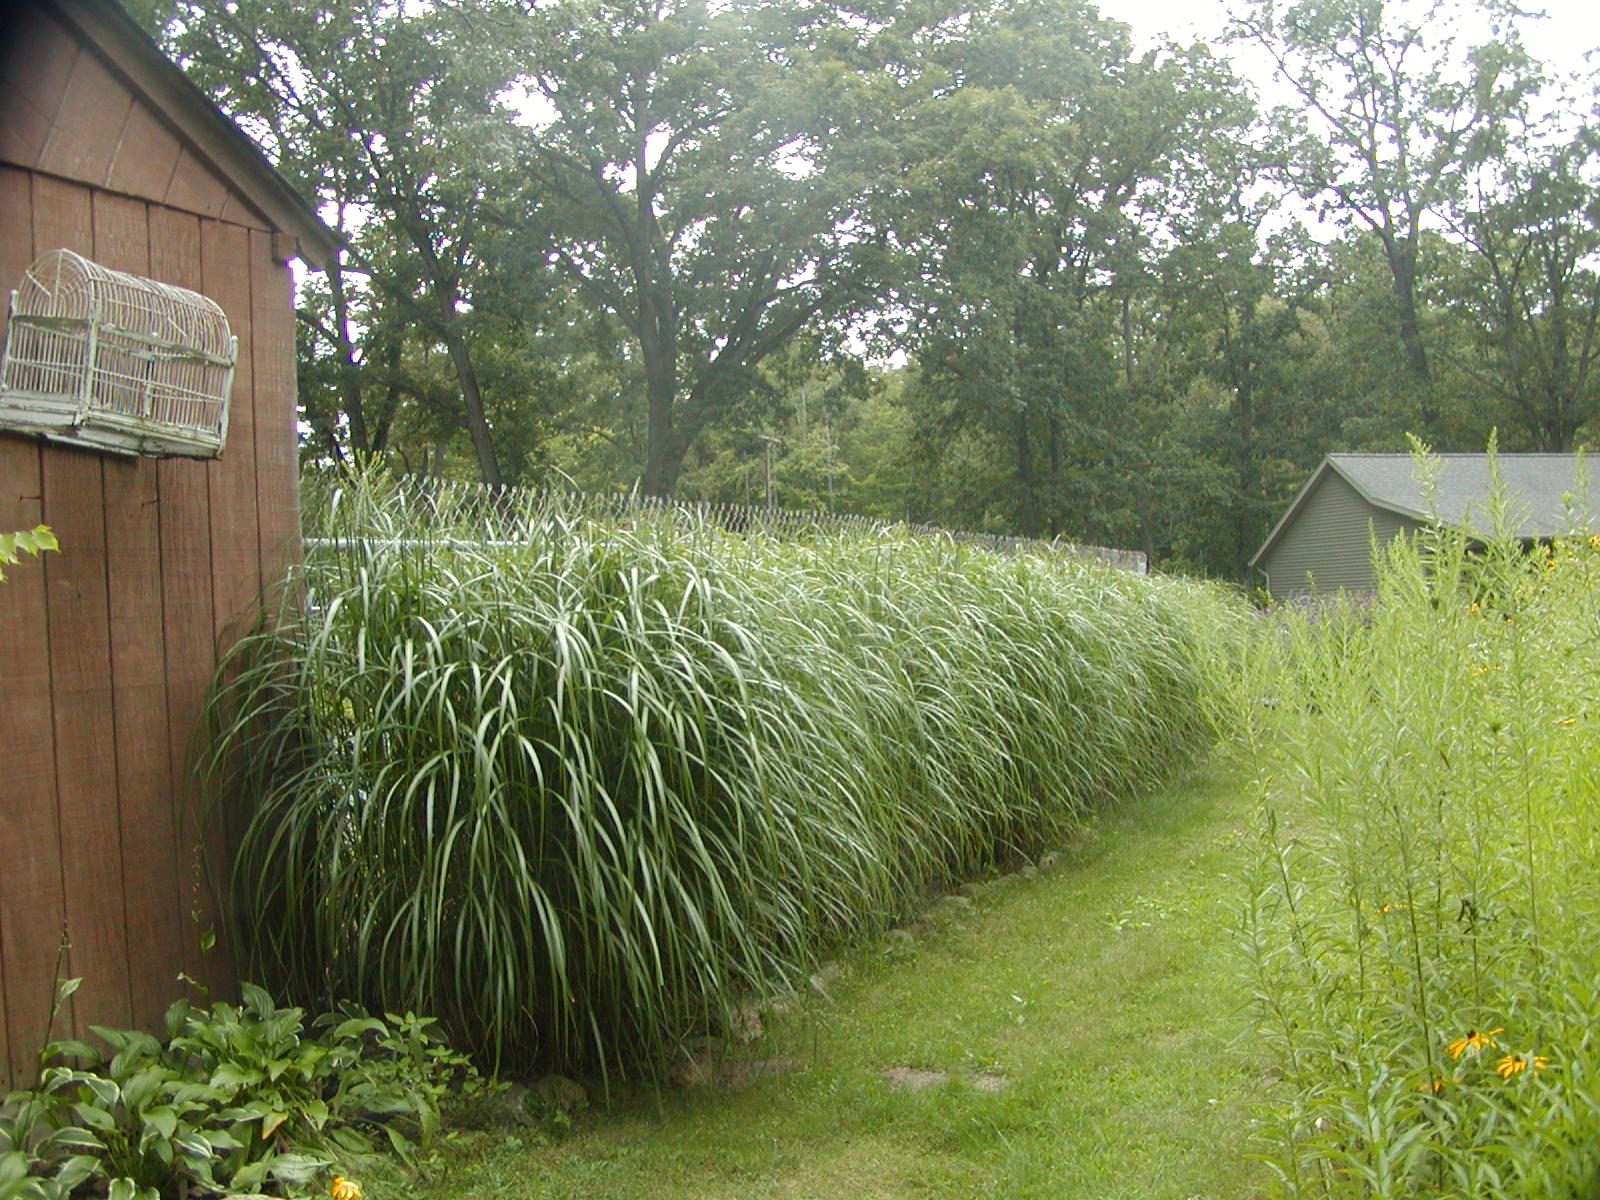 Pool landscaping with ornamental grasses designing with for Ornamental grass edging